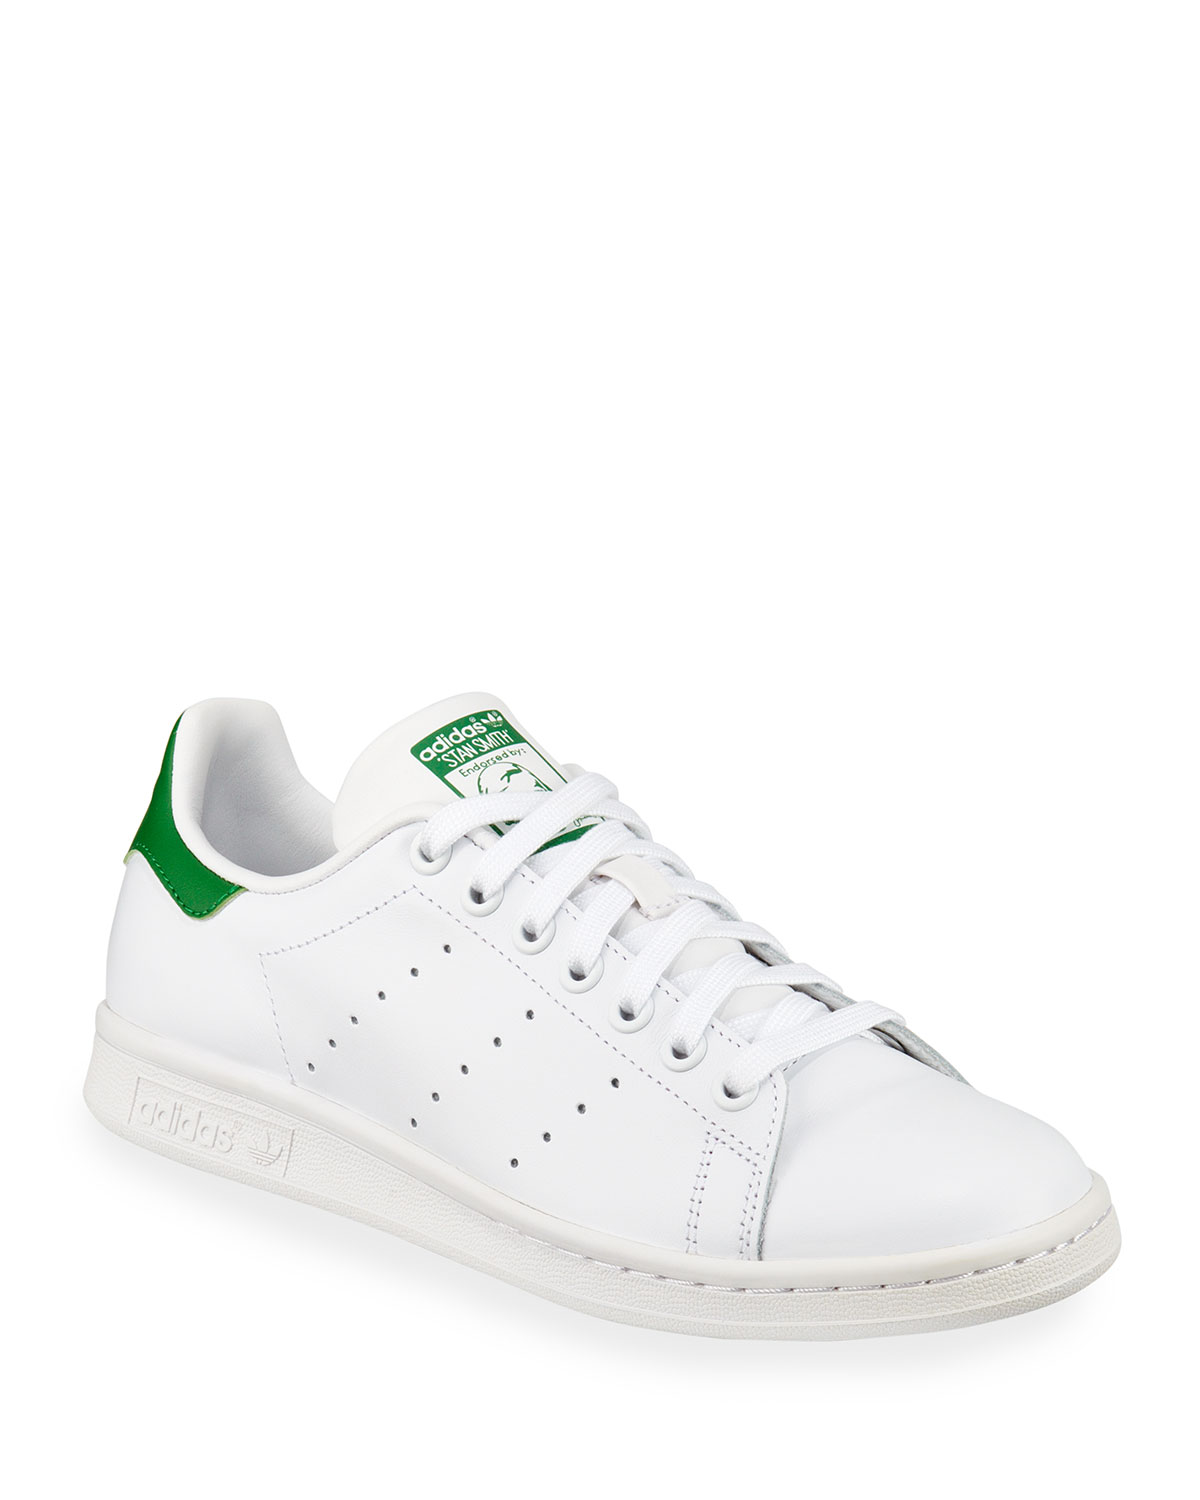 reputable site 61ece 066e8 Stan Smith Classic Sneaker, White/Green